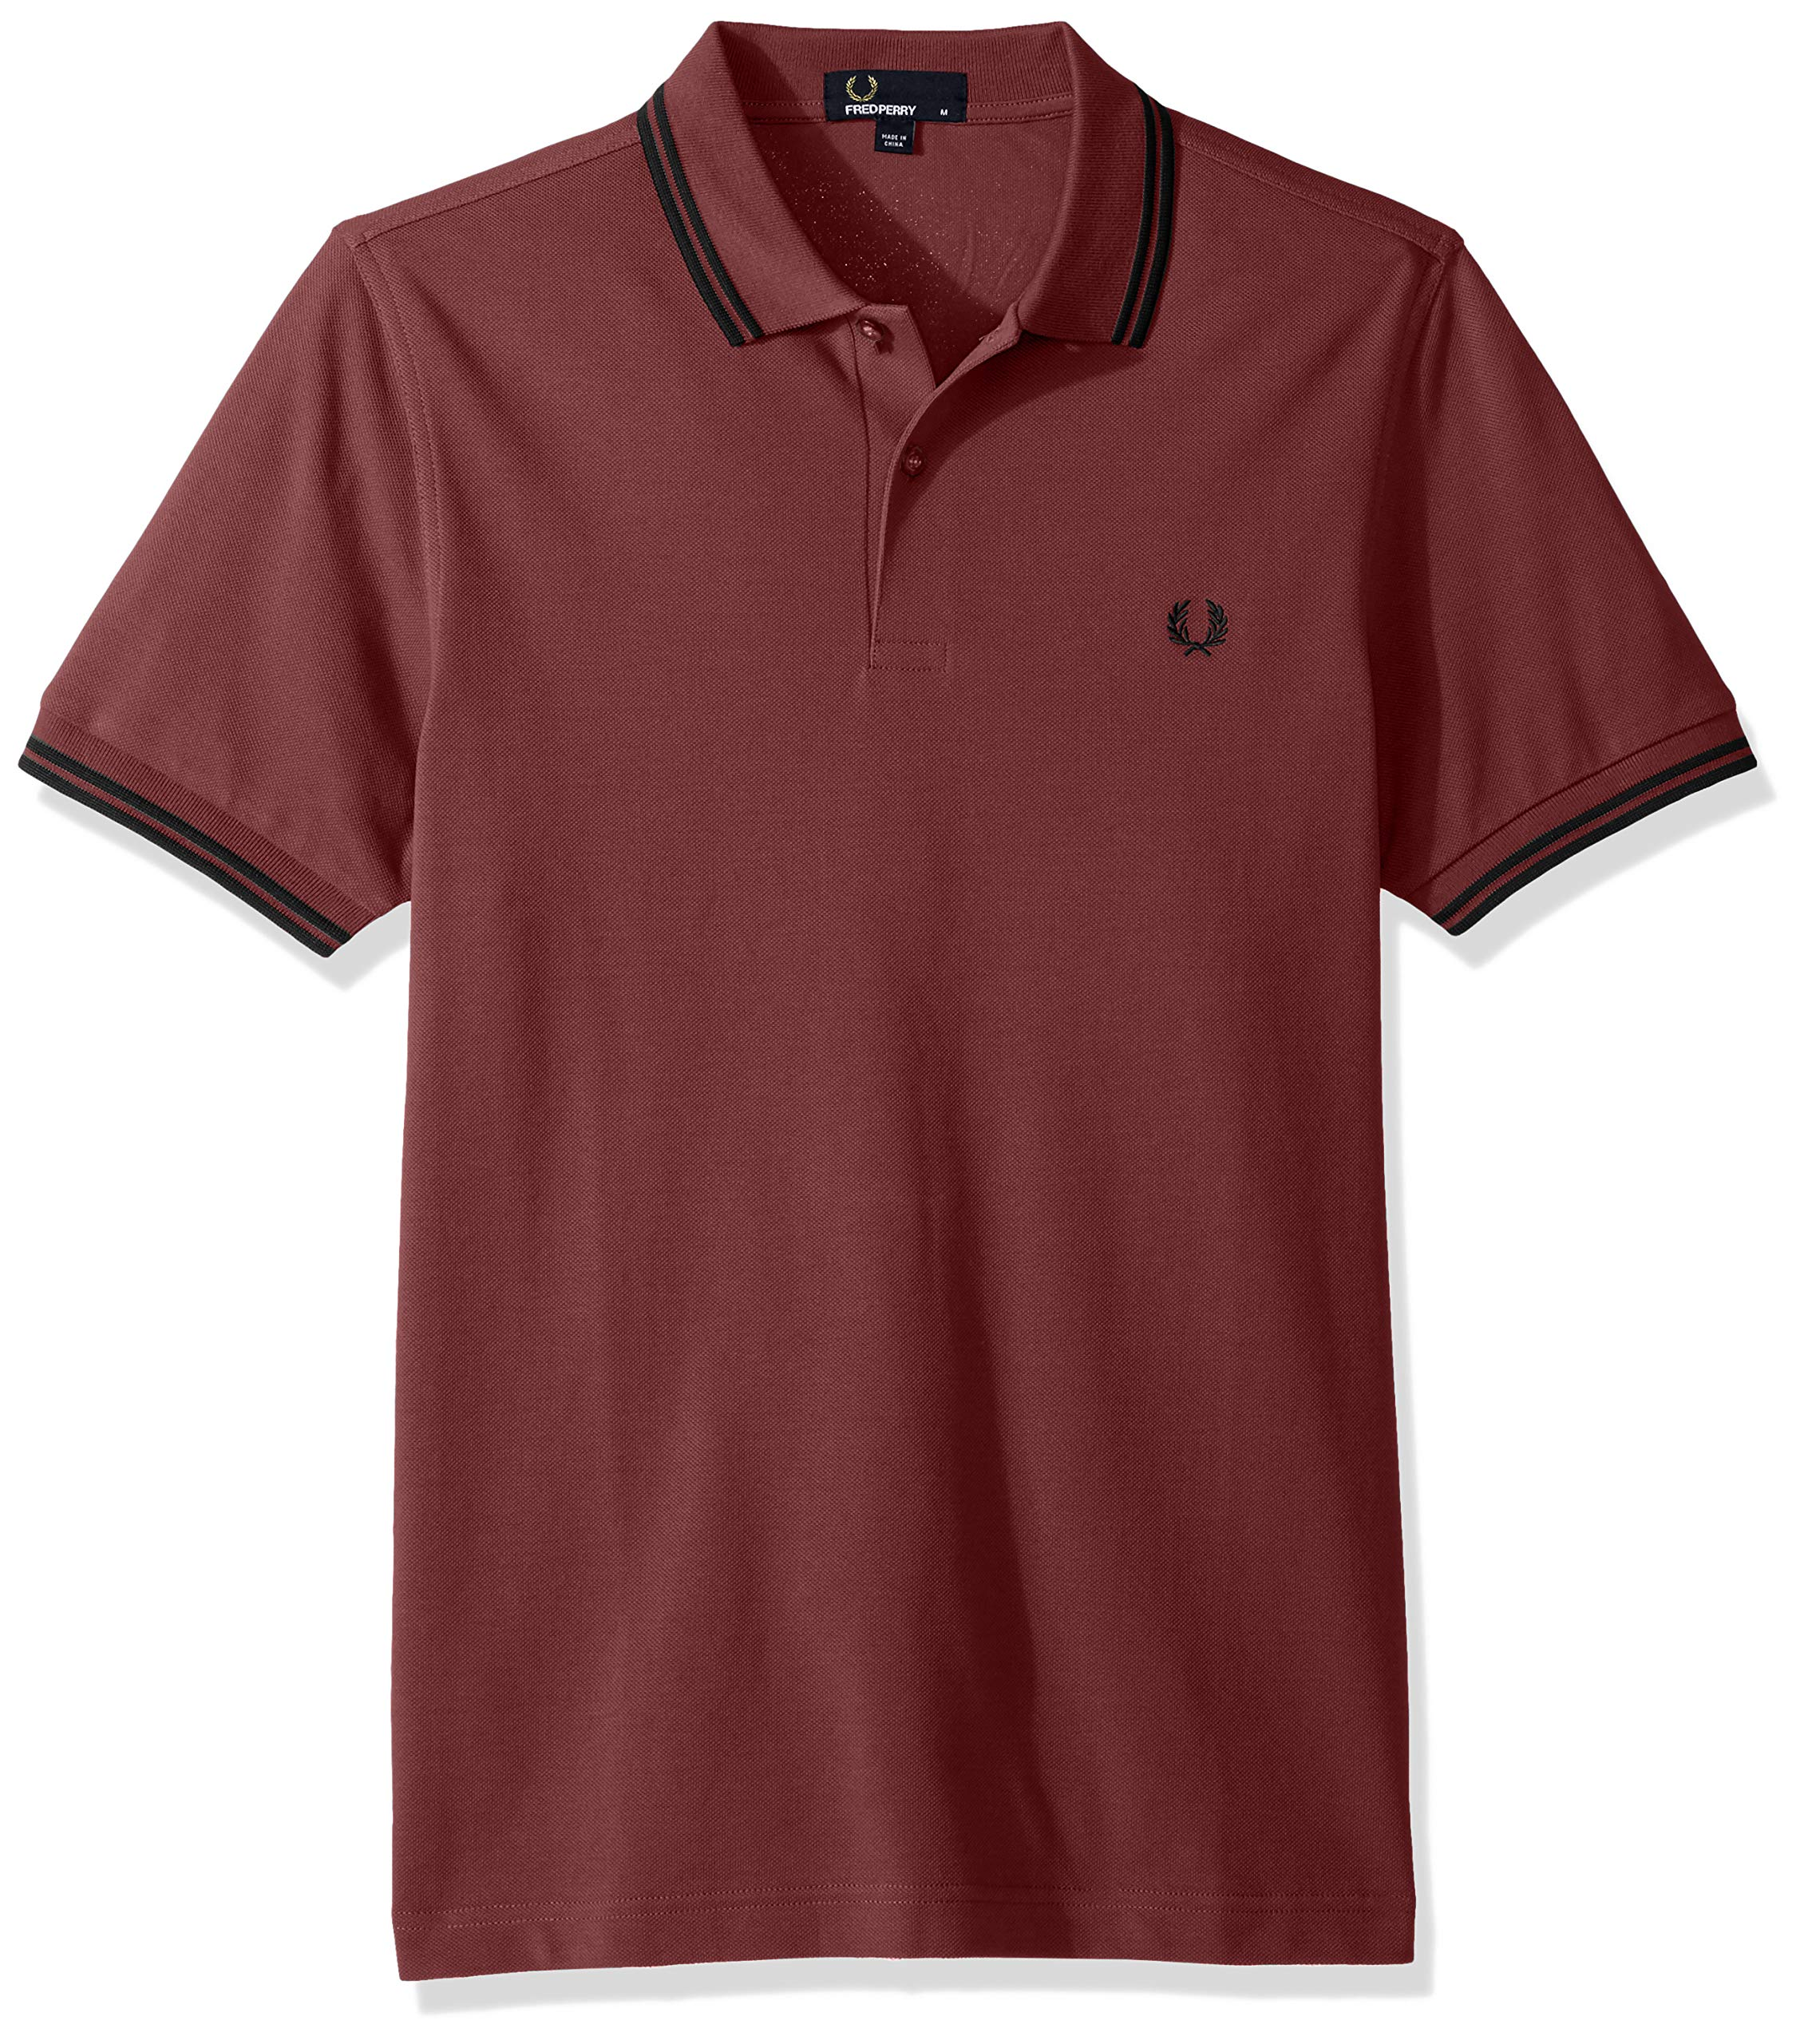 Fred Perry Men's Twin Tipped Shirt, Crushedberry/Black, X-Large by Fred Perry